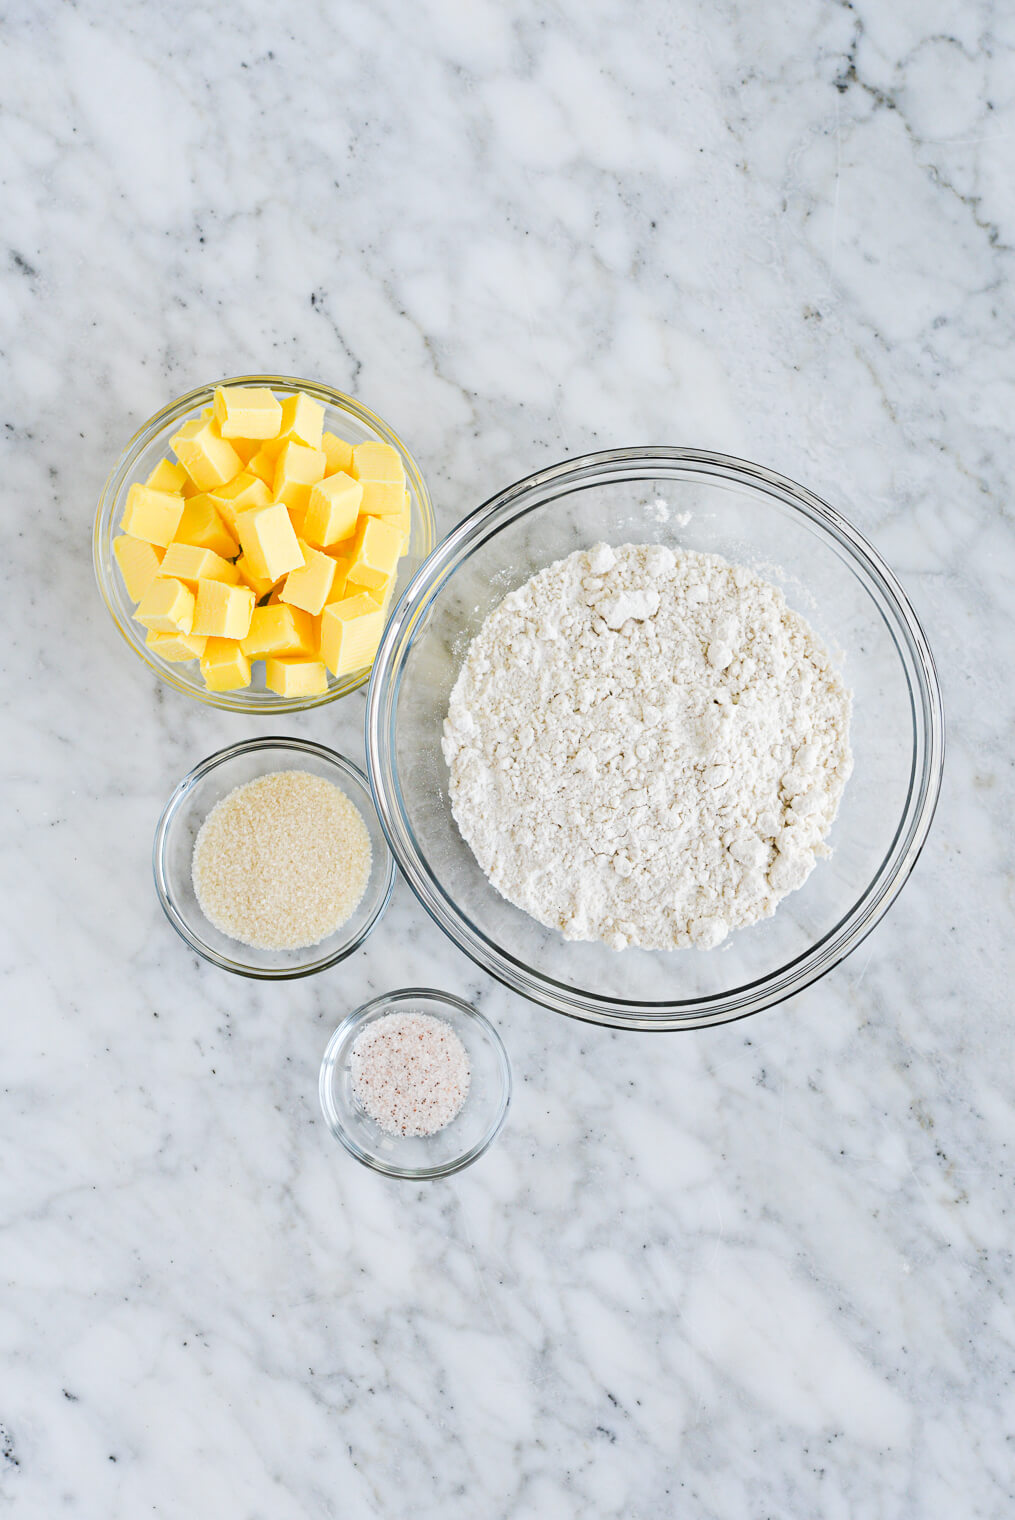 the top view of ingredients for gluten free pie crust (flour, cubed butter, salt, and sugar)